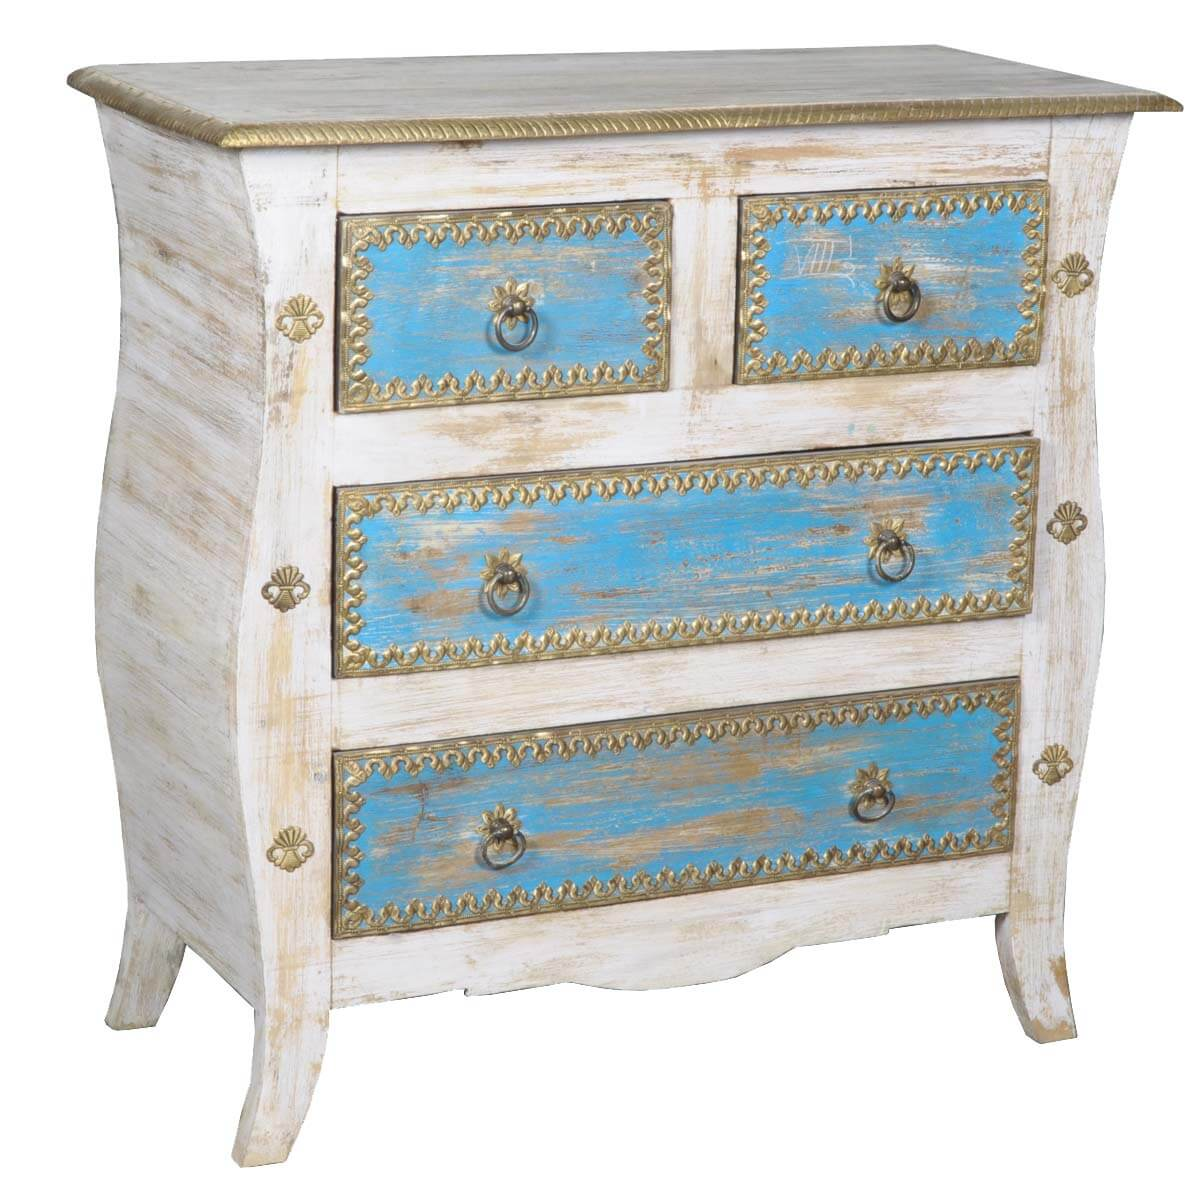 Queen Anne Painted Old Wood Blue &White Dresser